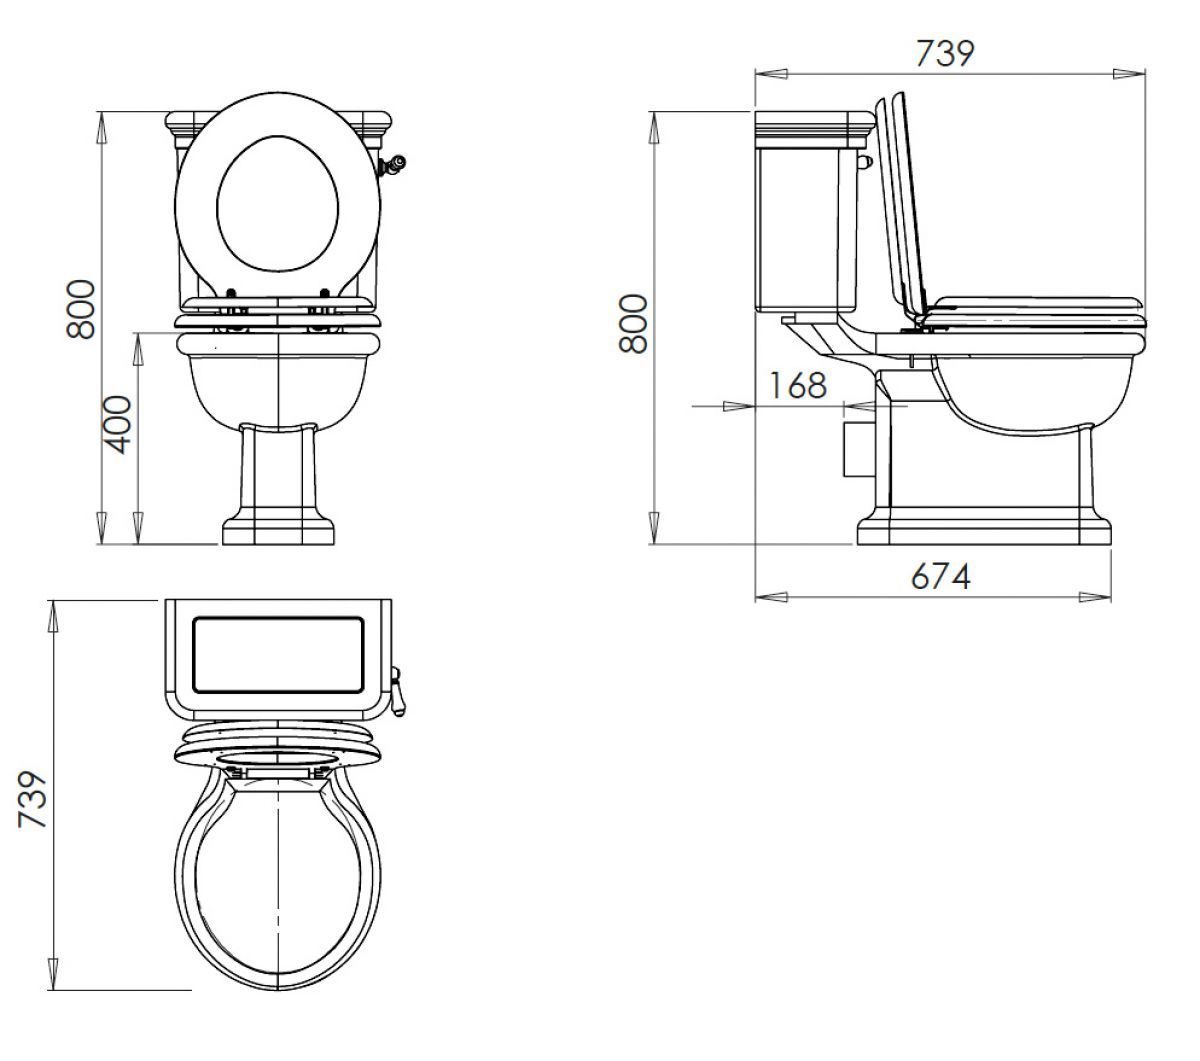 Imperial Etoile Close Coupled Toilet In 2020 Traditional Toilets Close Coupled Toilets Imperial Bathrooms